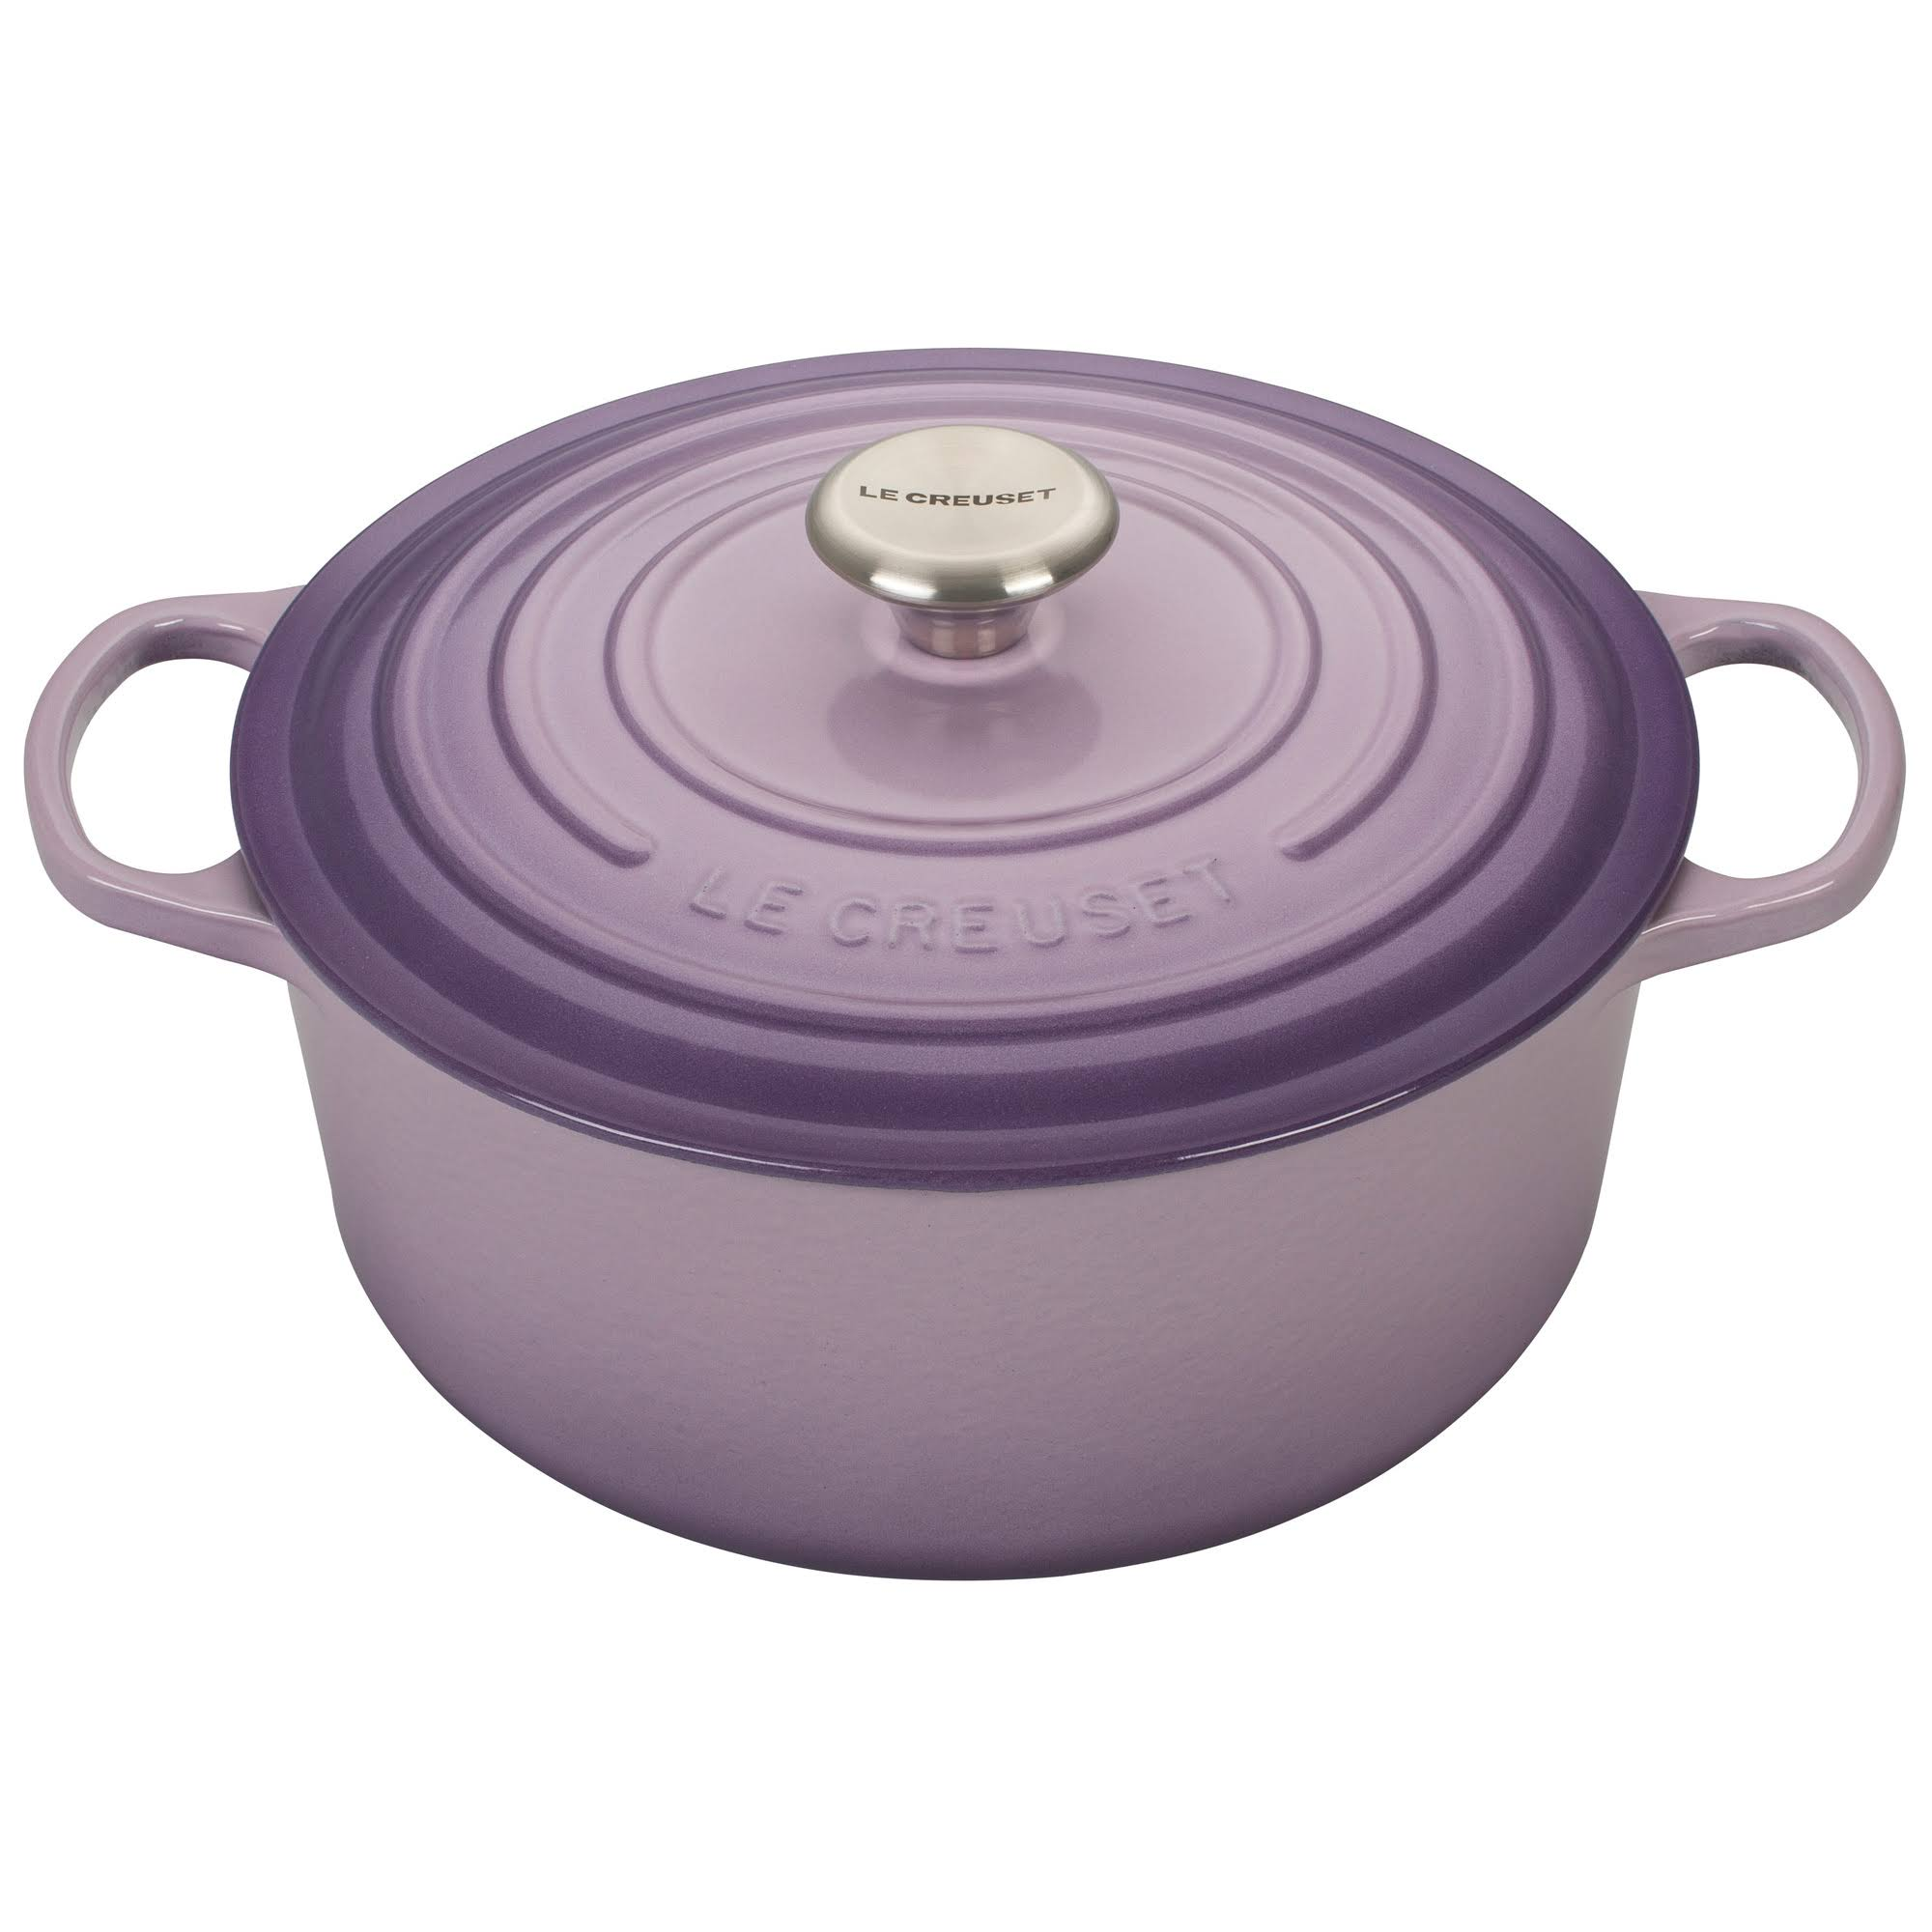 Signature Enameled Cast Iron Round French Oven - Blue Bell Purple, 5.5qt